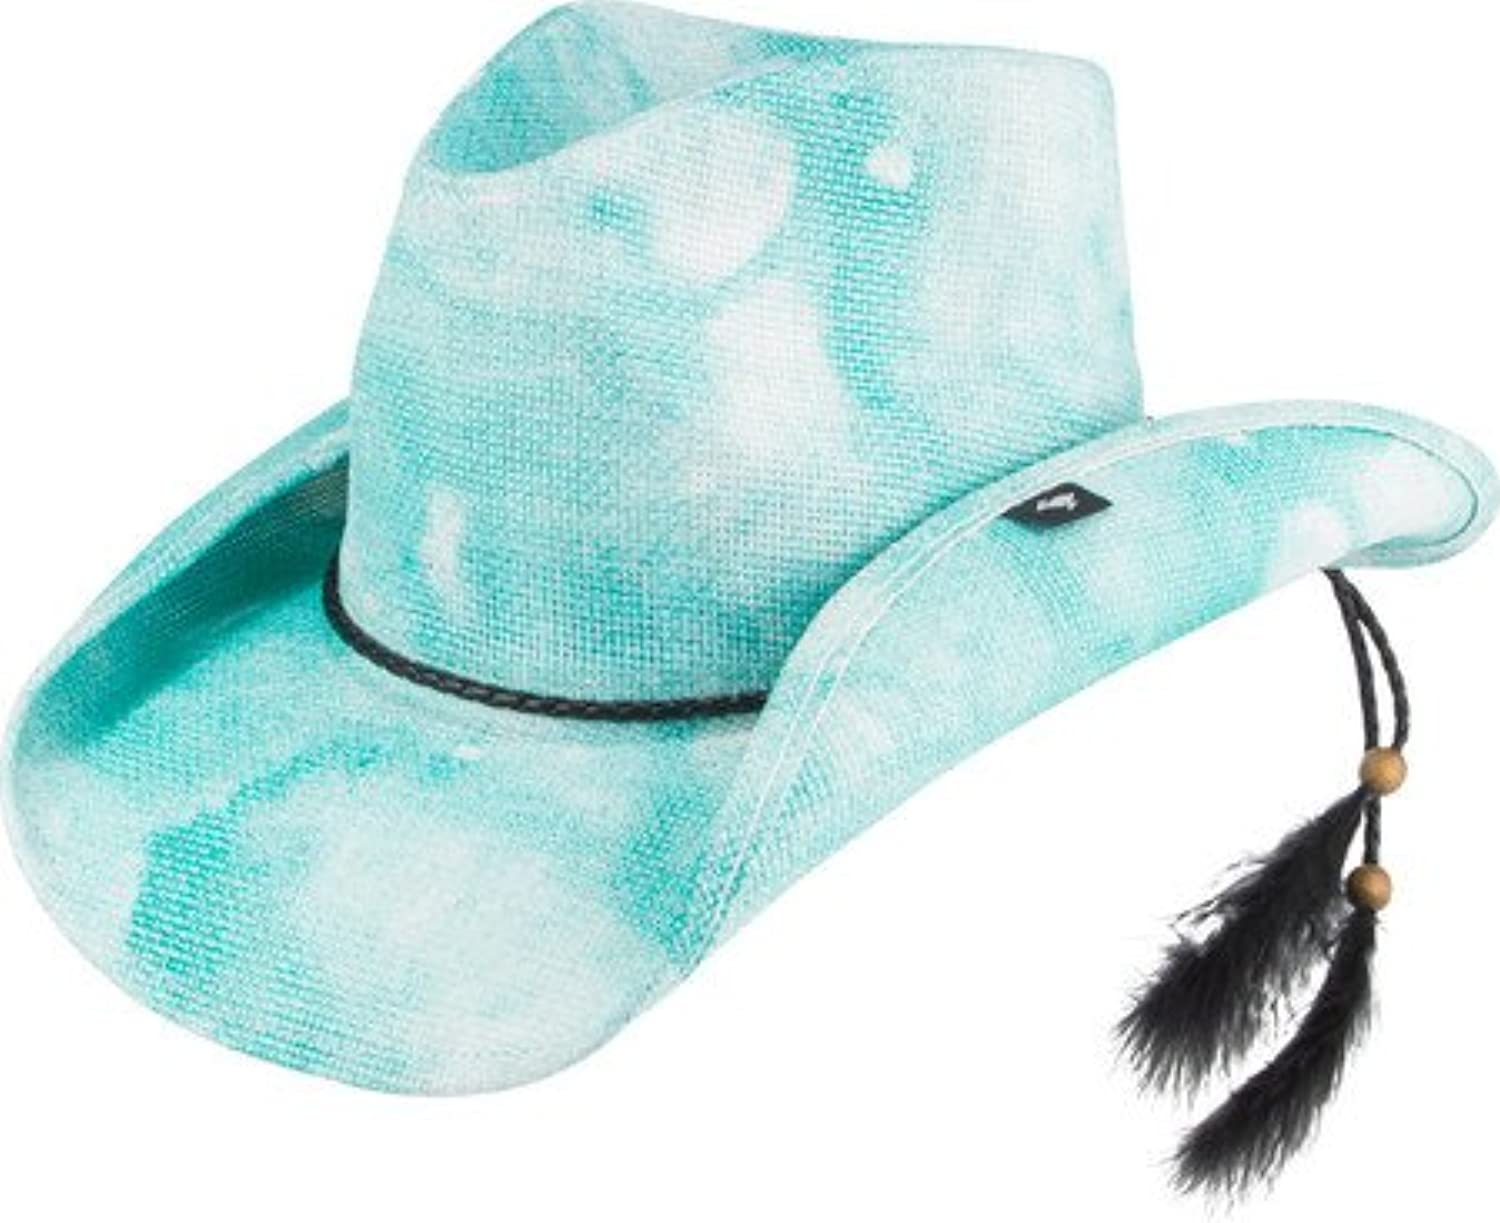 Peter Grimm Ltd Women's Althea Printed Cowgirl Hat  Pgd9685AquO